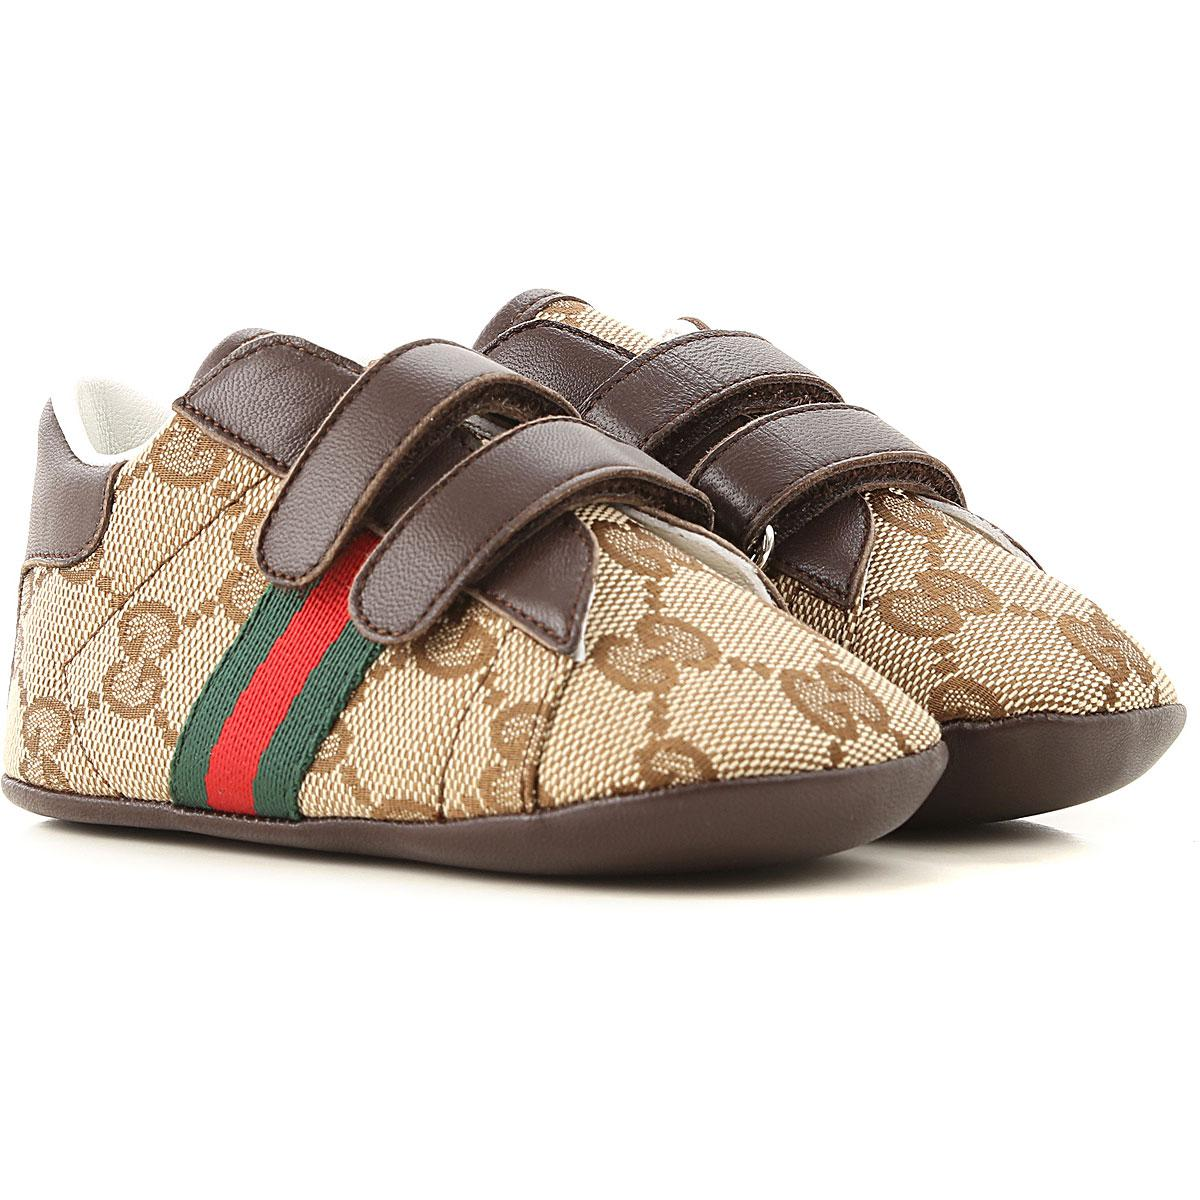 2b27658b Gucci Baby Boy Clothing On Sale in Natural for Men - Lyst